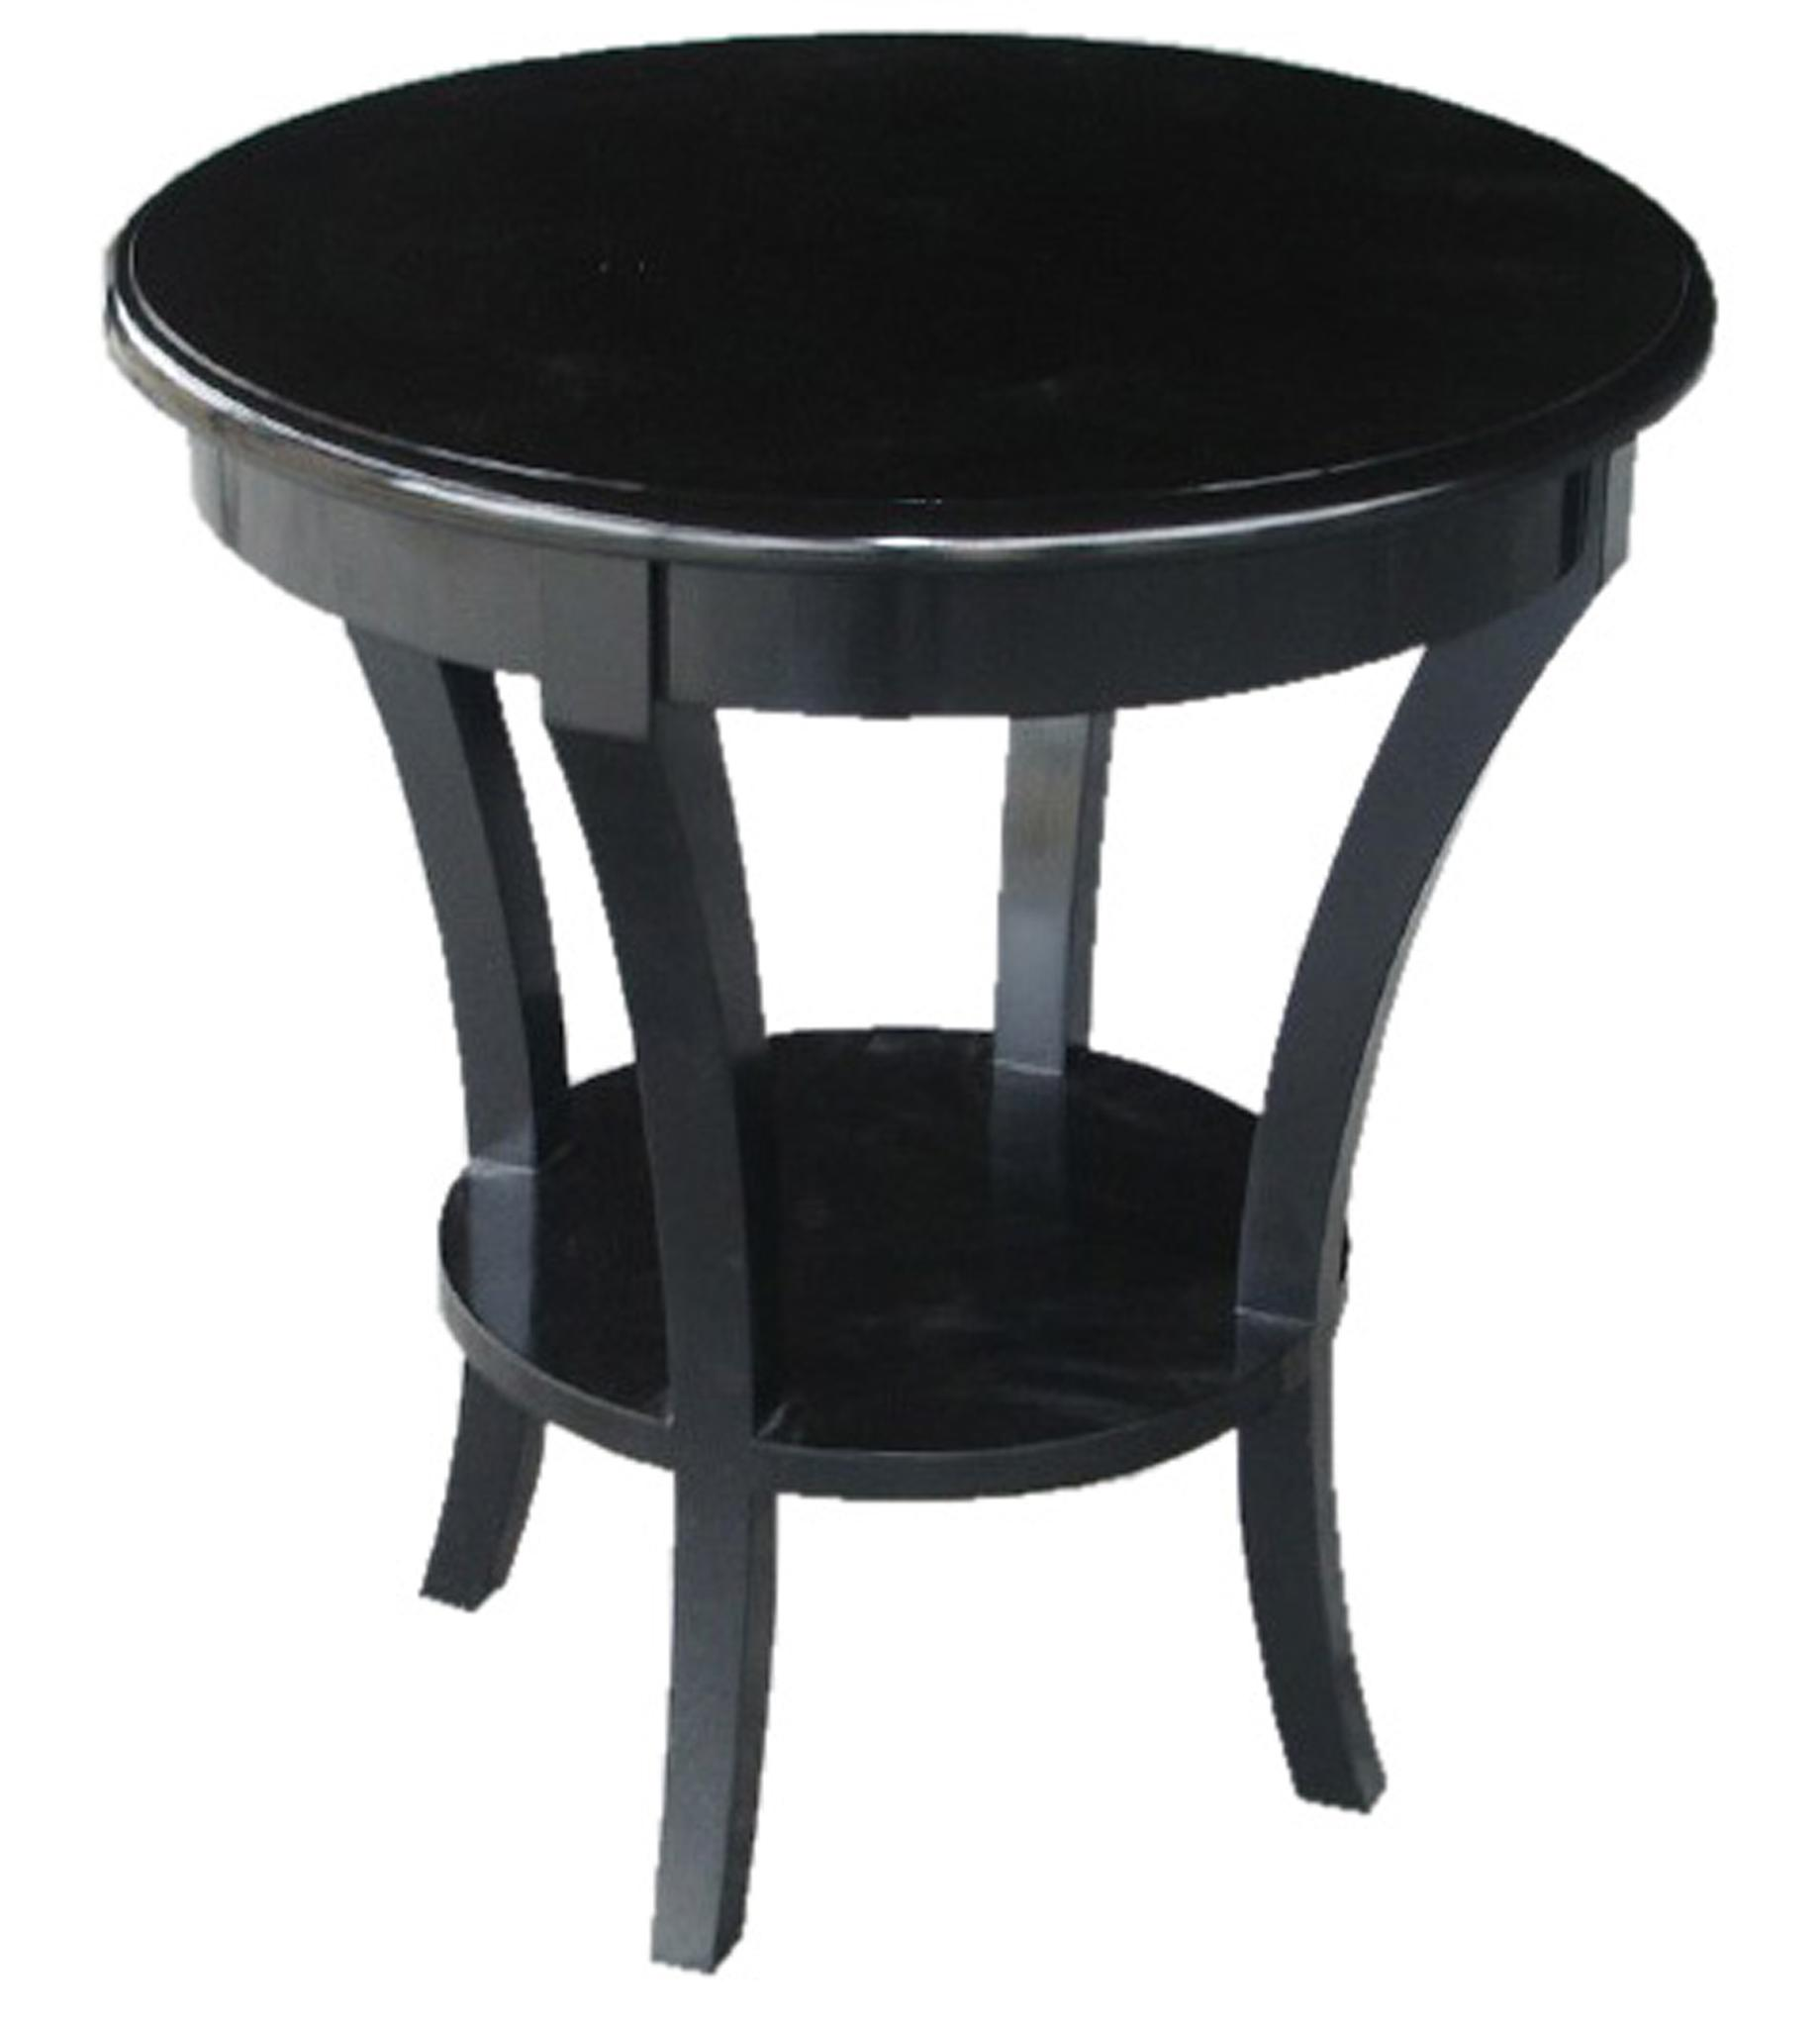 small black tables accent table round end metal target tall for spaces wood dining room furniture nautical flush mount light leaf pub style kitchen home decoration things